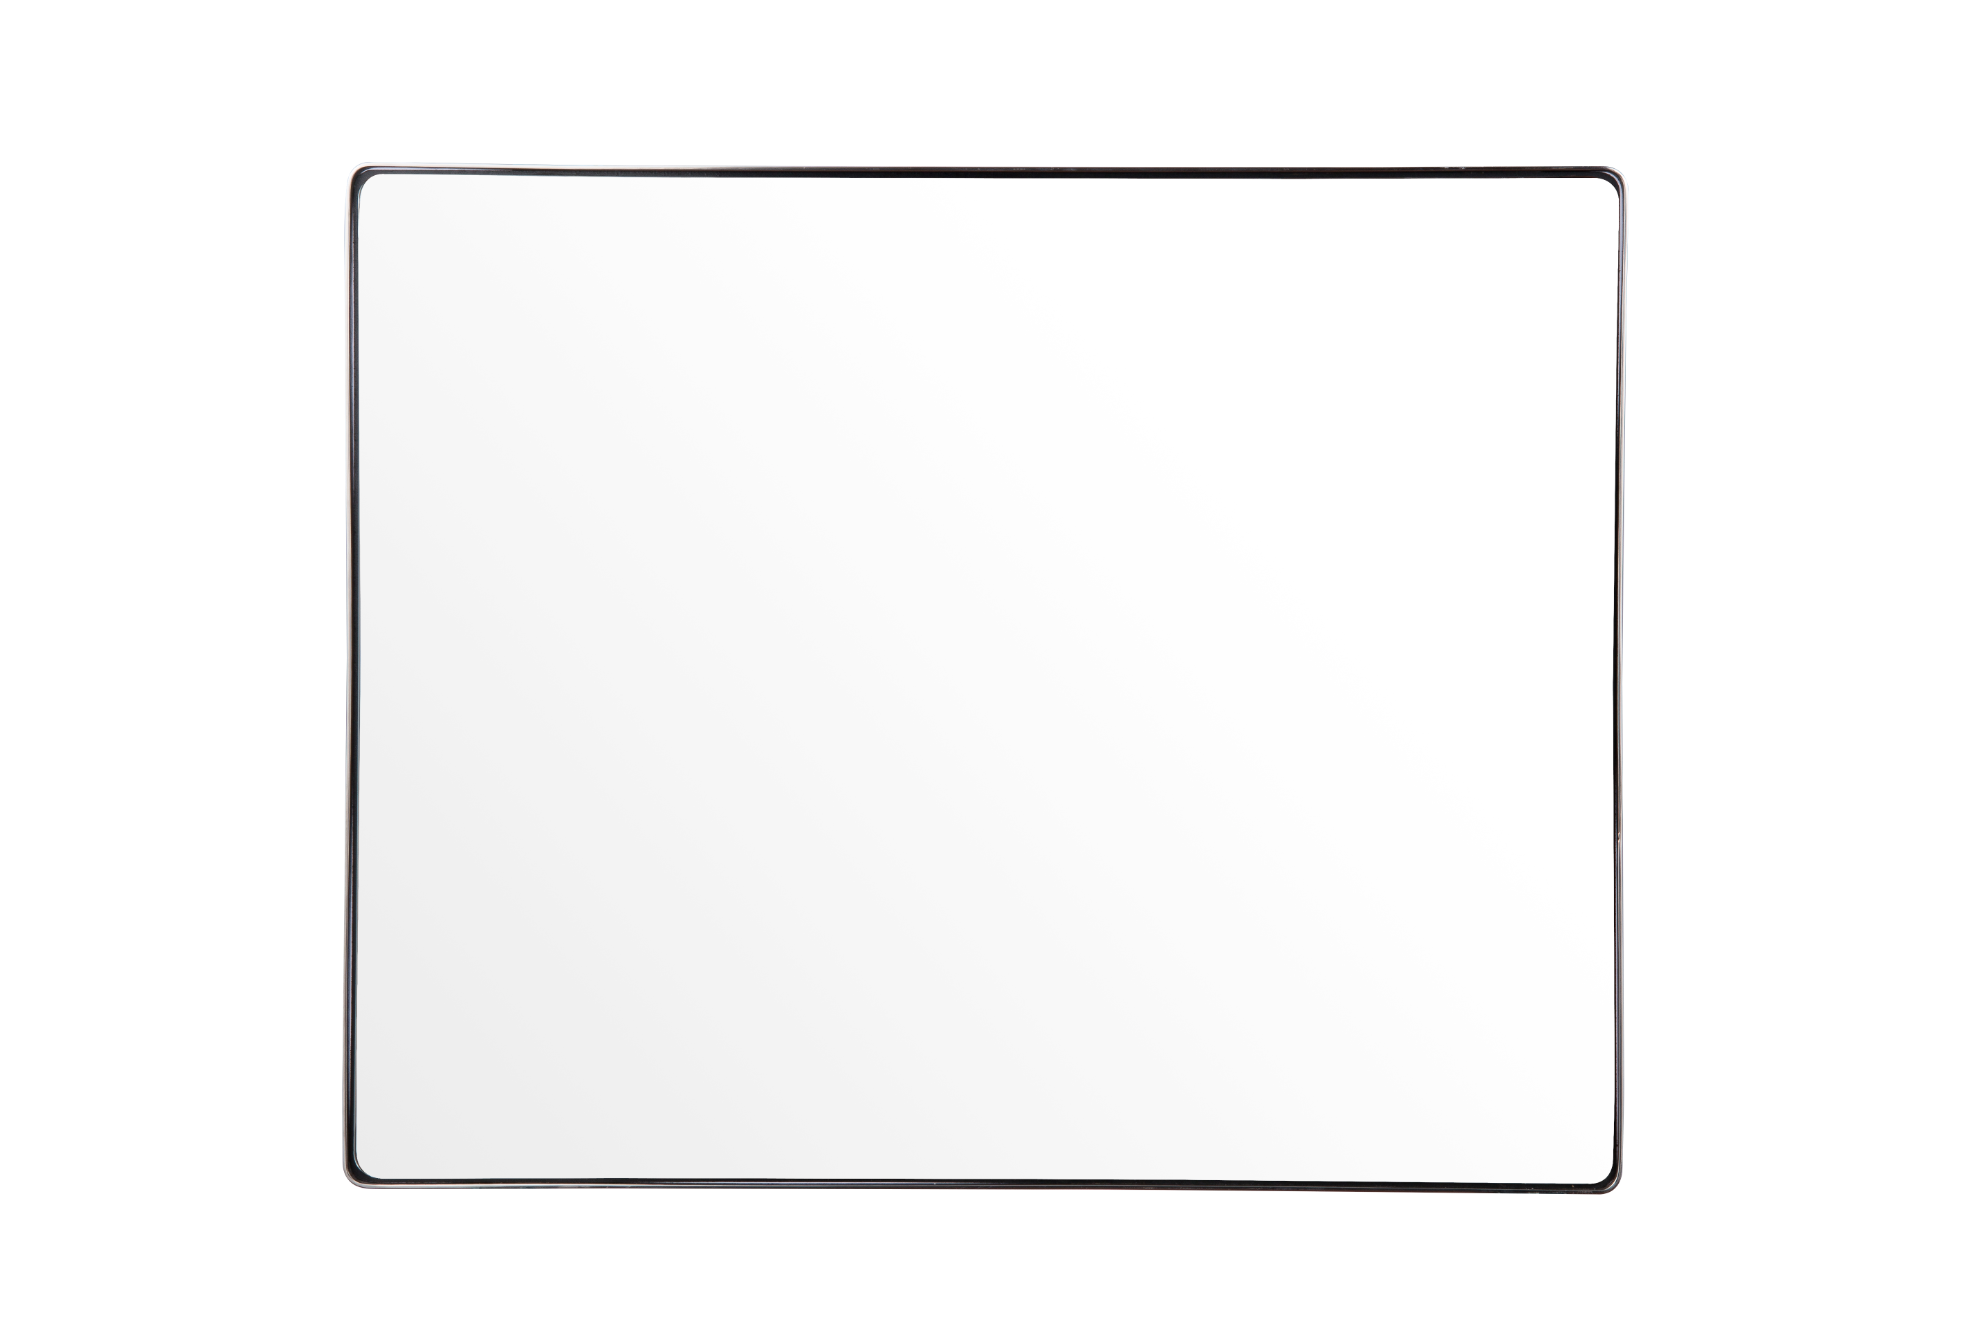 Kye 30x24 Rounded Rectangular Wall Mirror - Brushed Nickel - 407A02BN